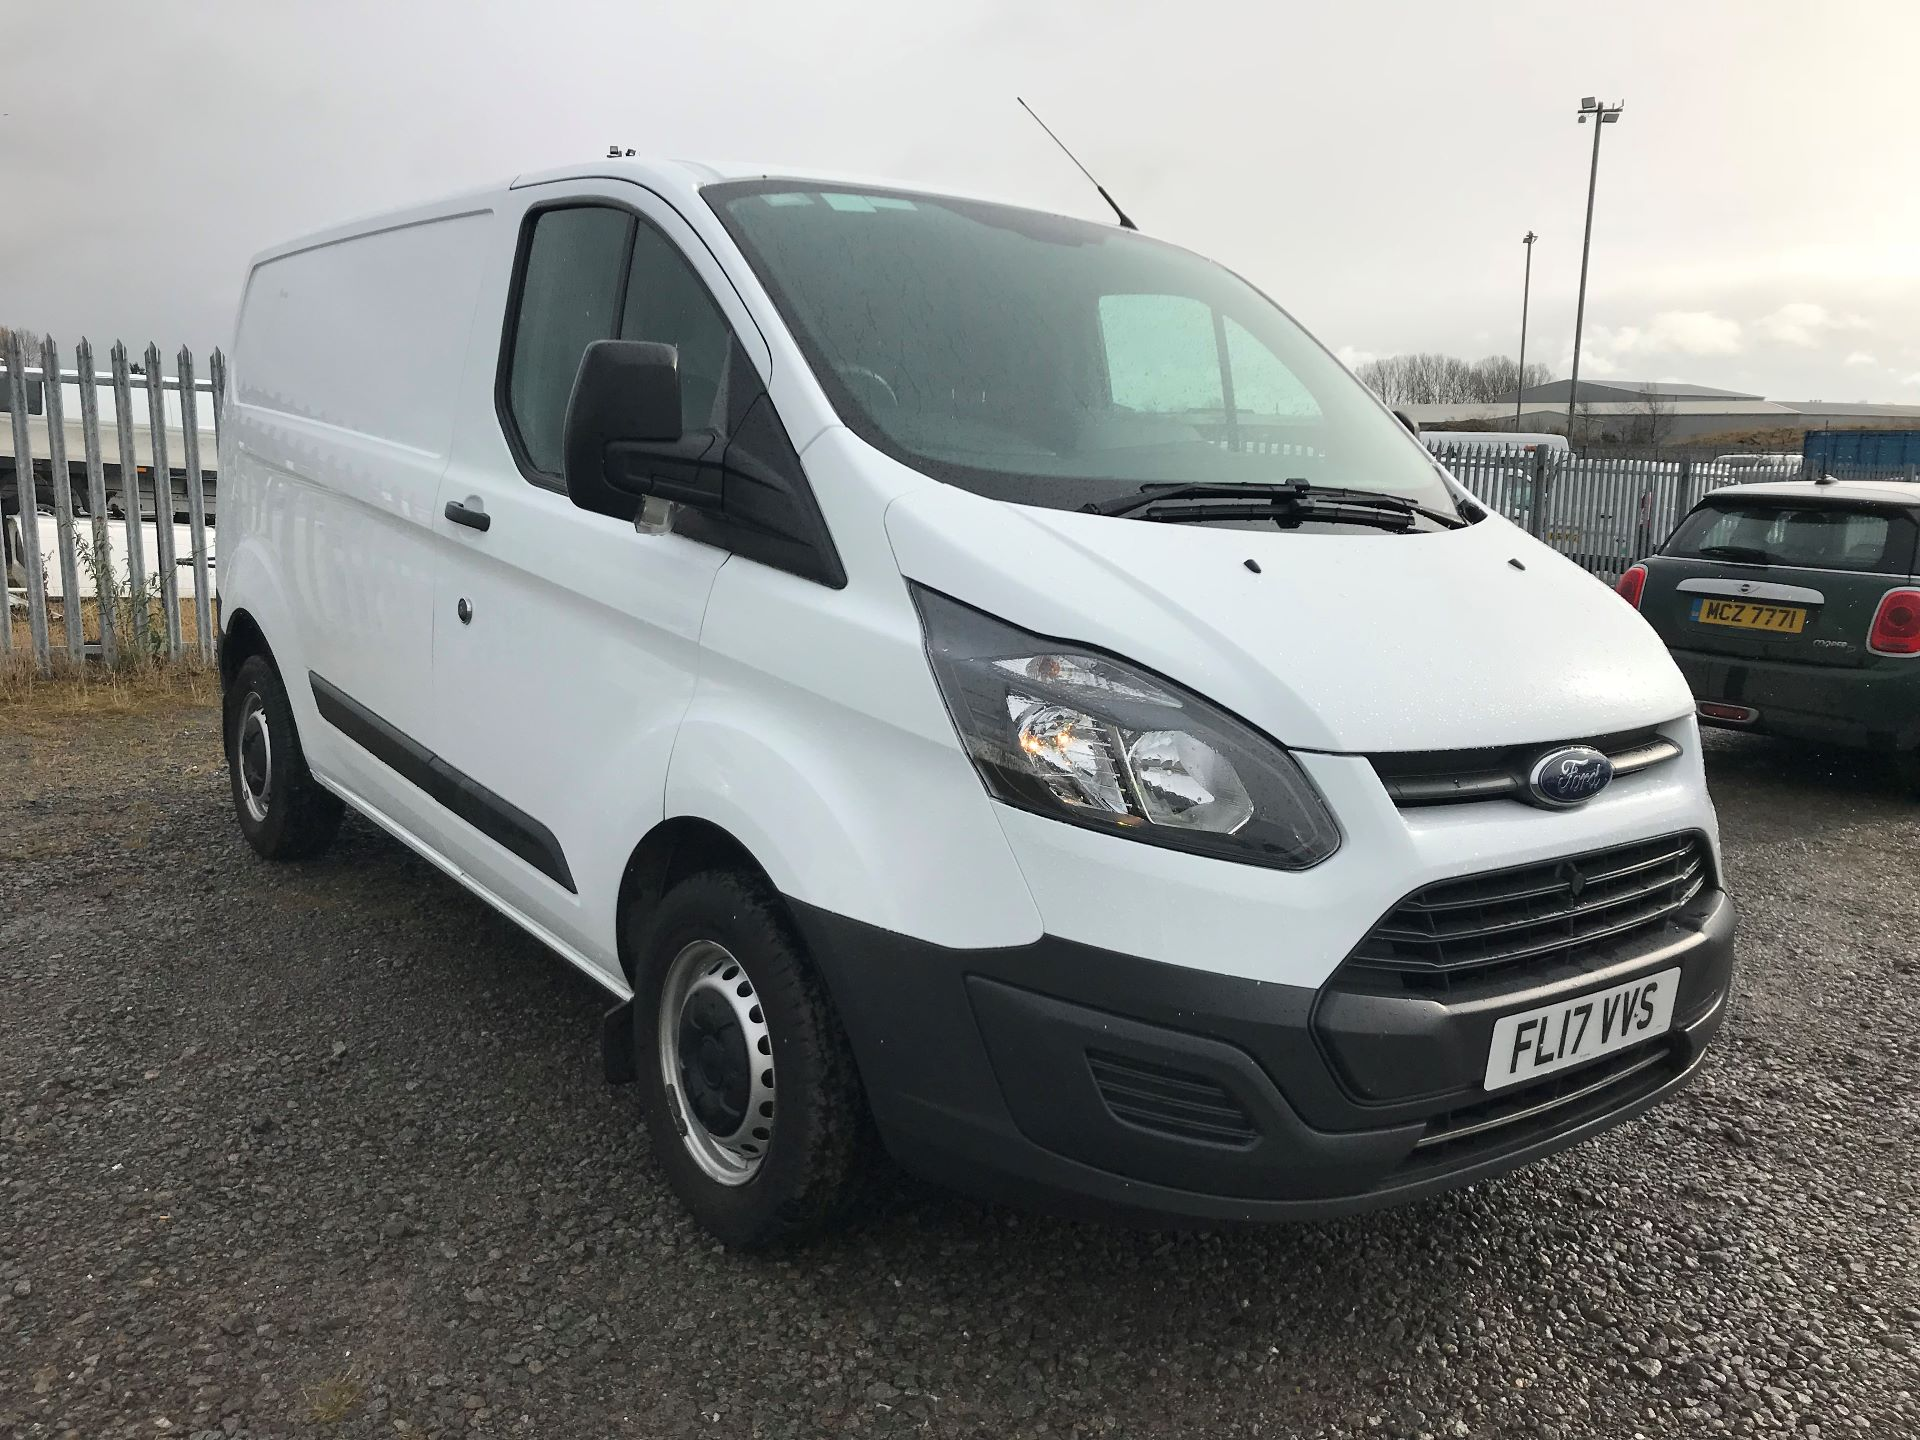 2017 Ford Transit Custom 2.0 Tdci 105Ps Low Roof Van (FL17VVS) Thumbnail 1